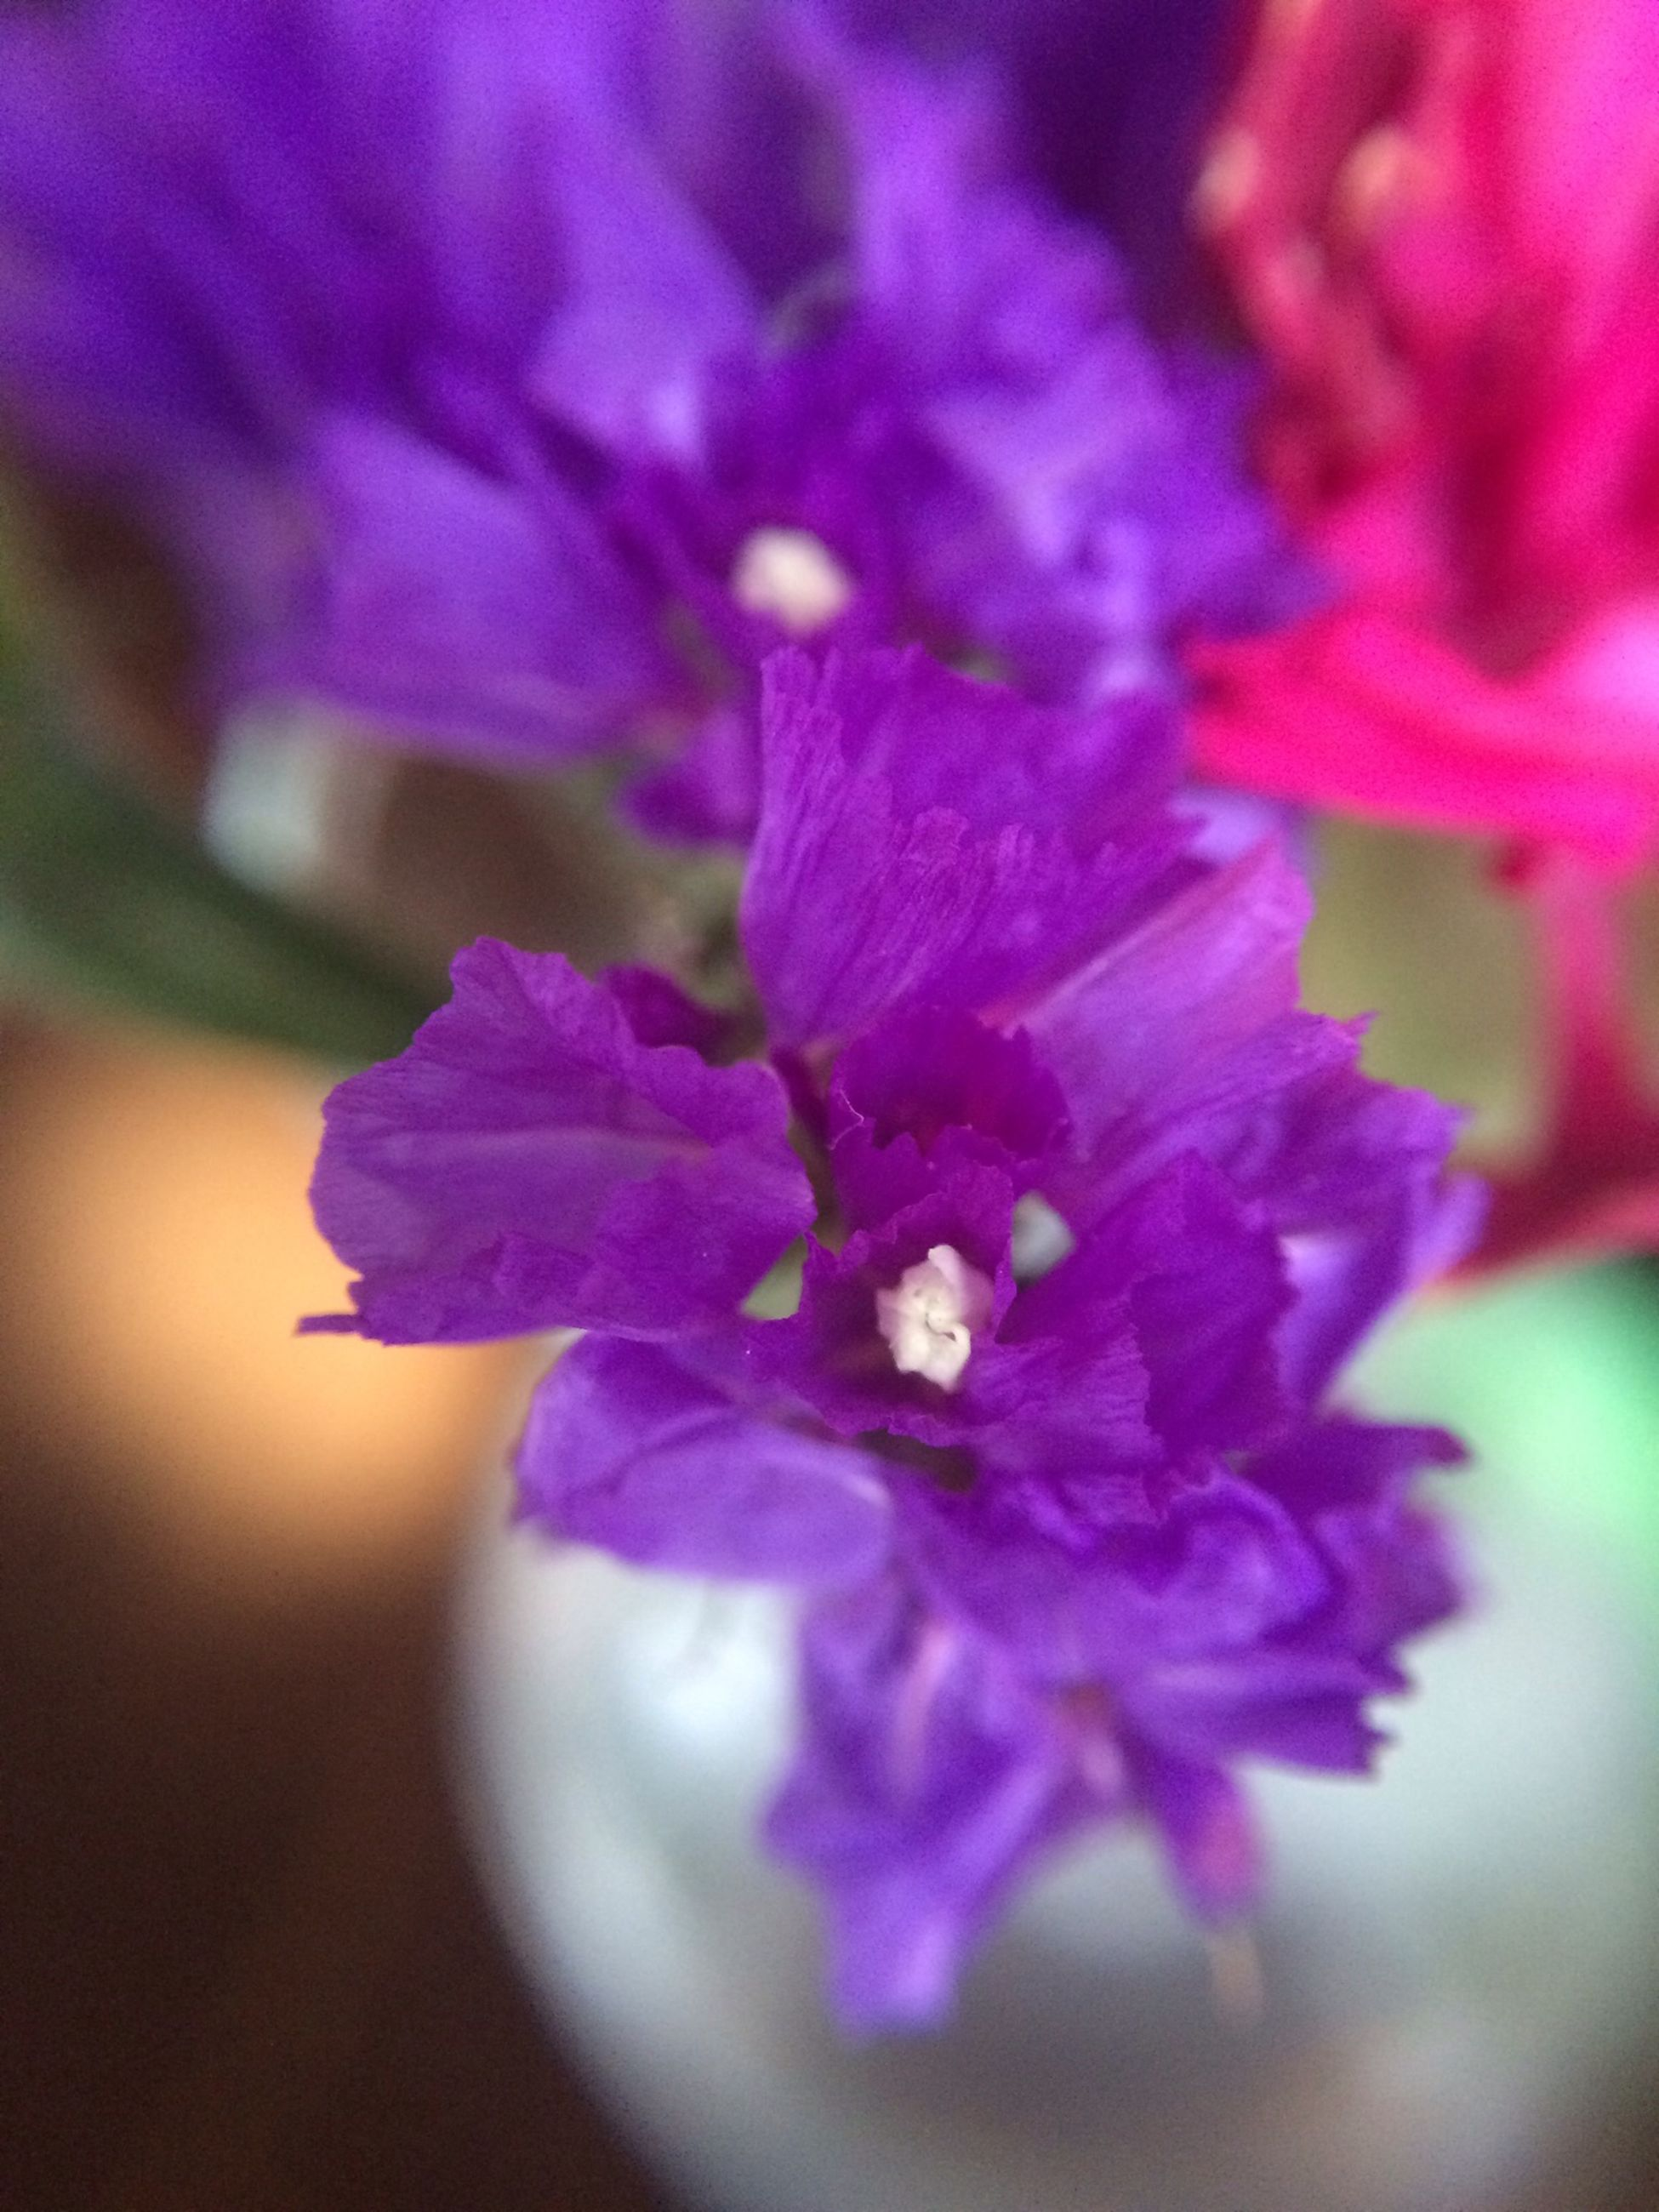 flower, petal, freshness, flower head, fragility, close-up, growth, beauty in nature, purple, nature, selective focus, pink color, blooming, in bloom, focus on foreground, plant, stamen, pollen, blossom, single flower